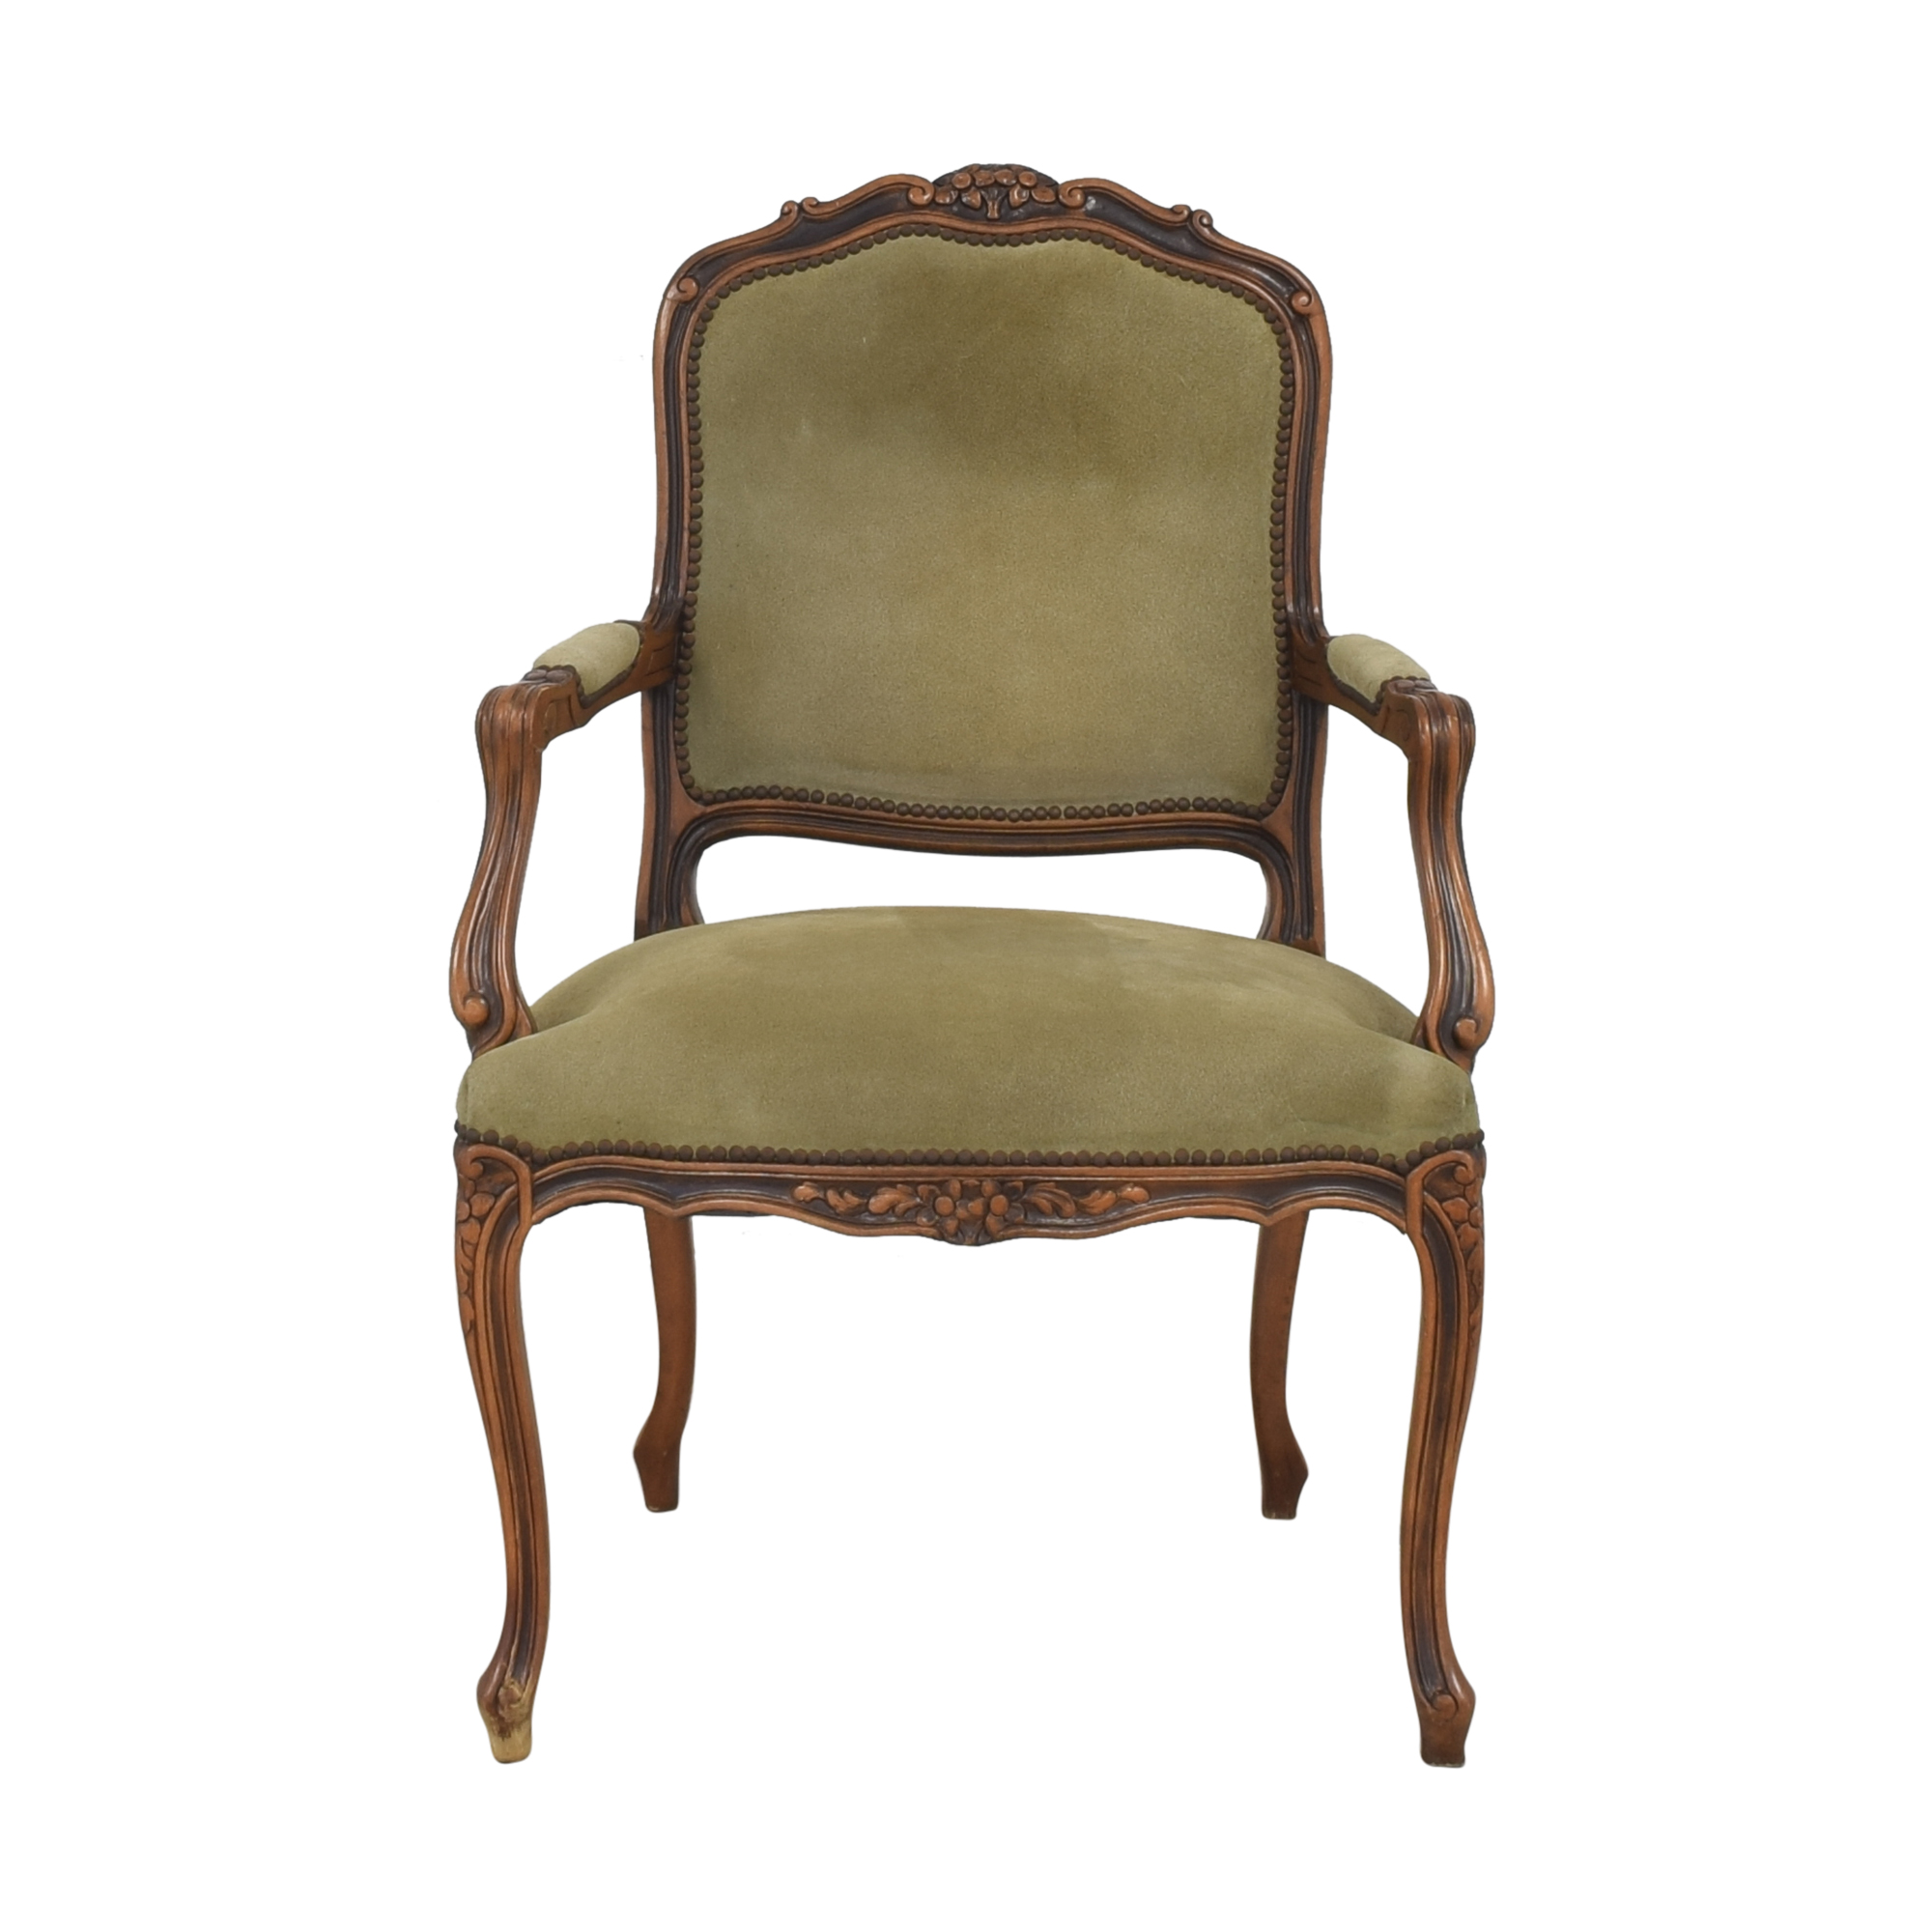 buy Chateau d'Ax Louis XV Style Armchair Chateau d'Ax Chairs